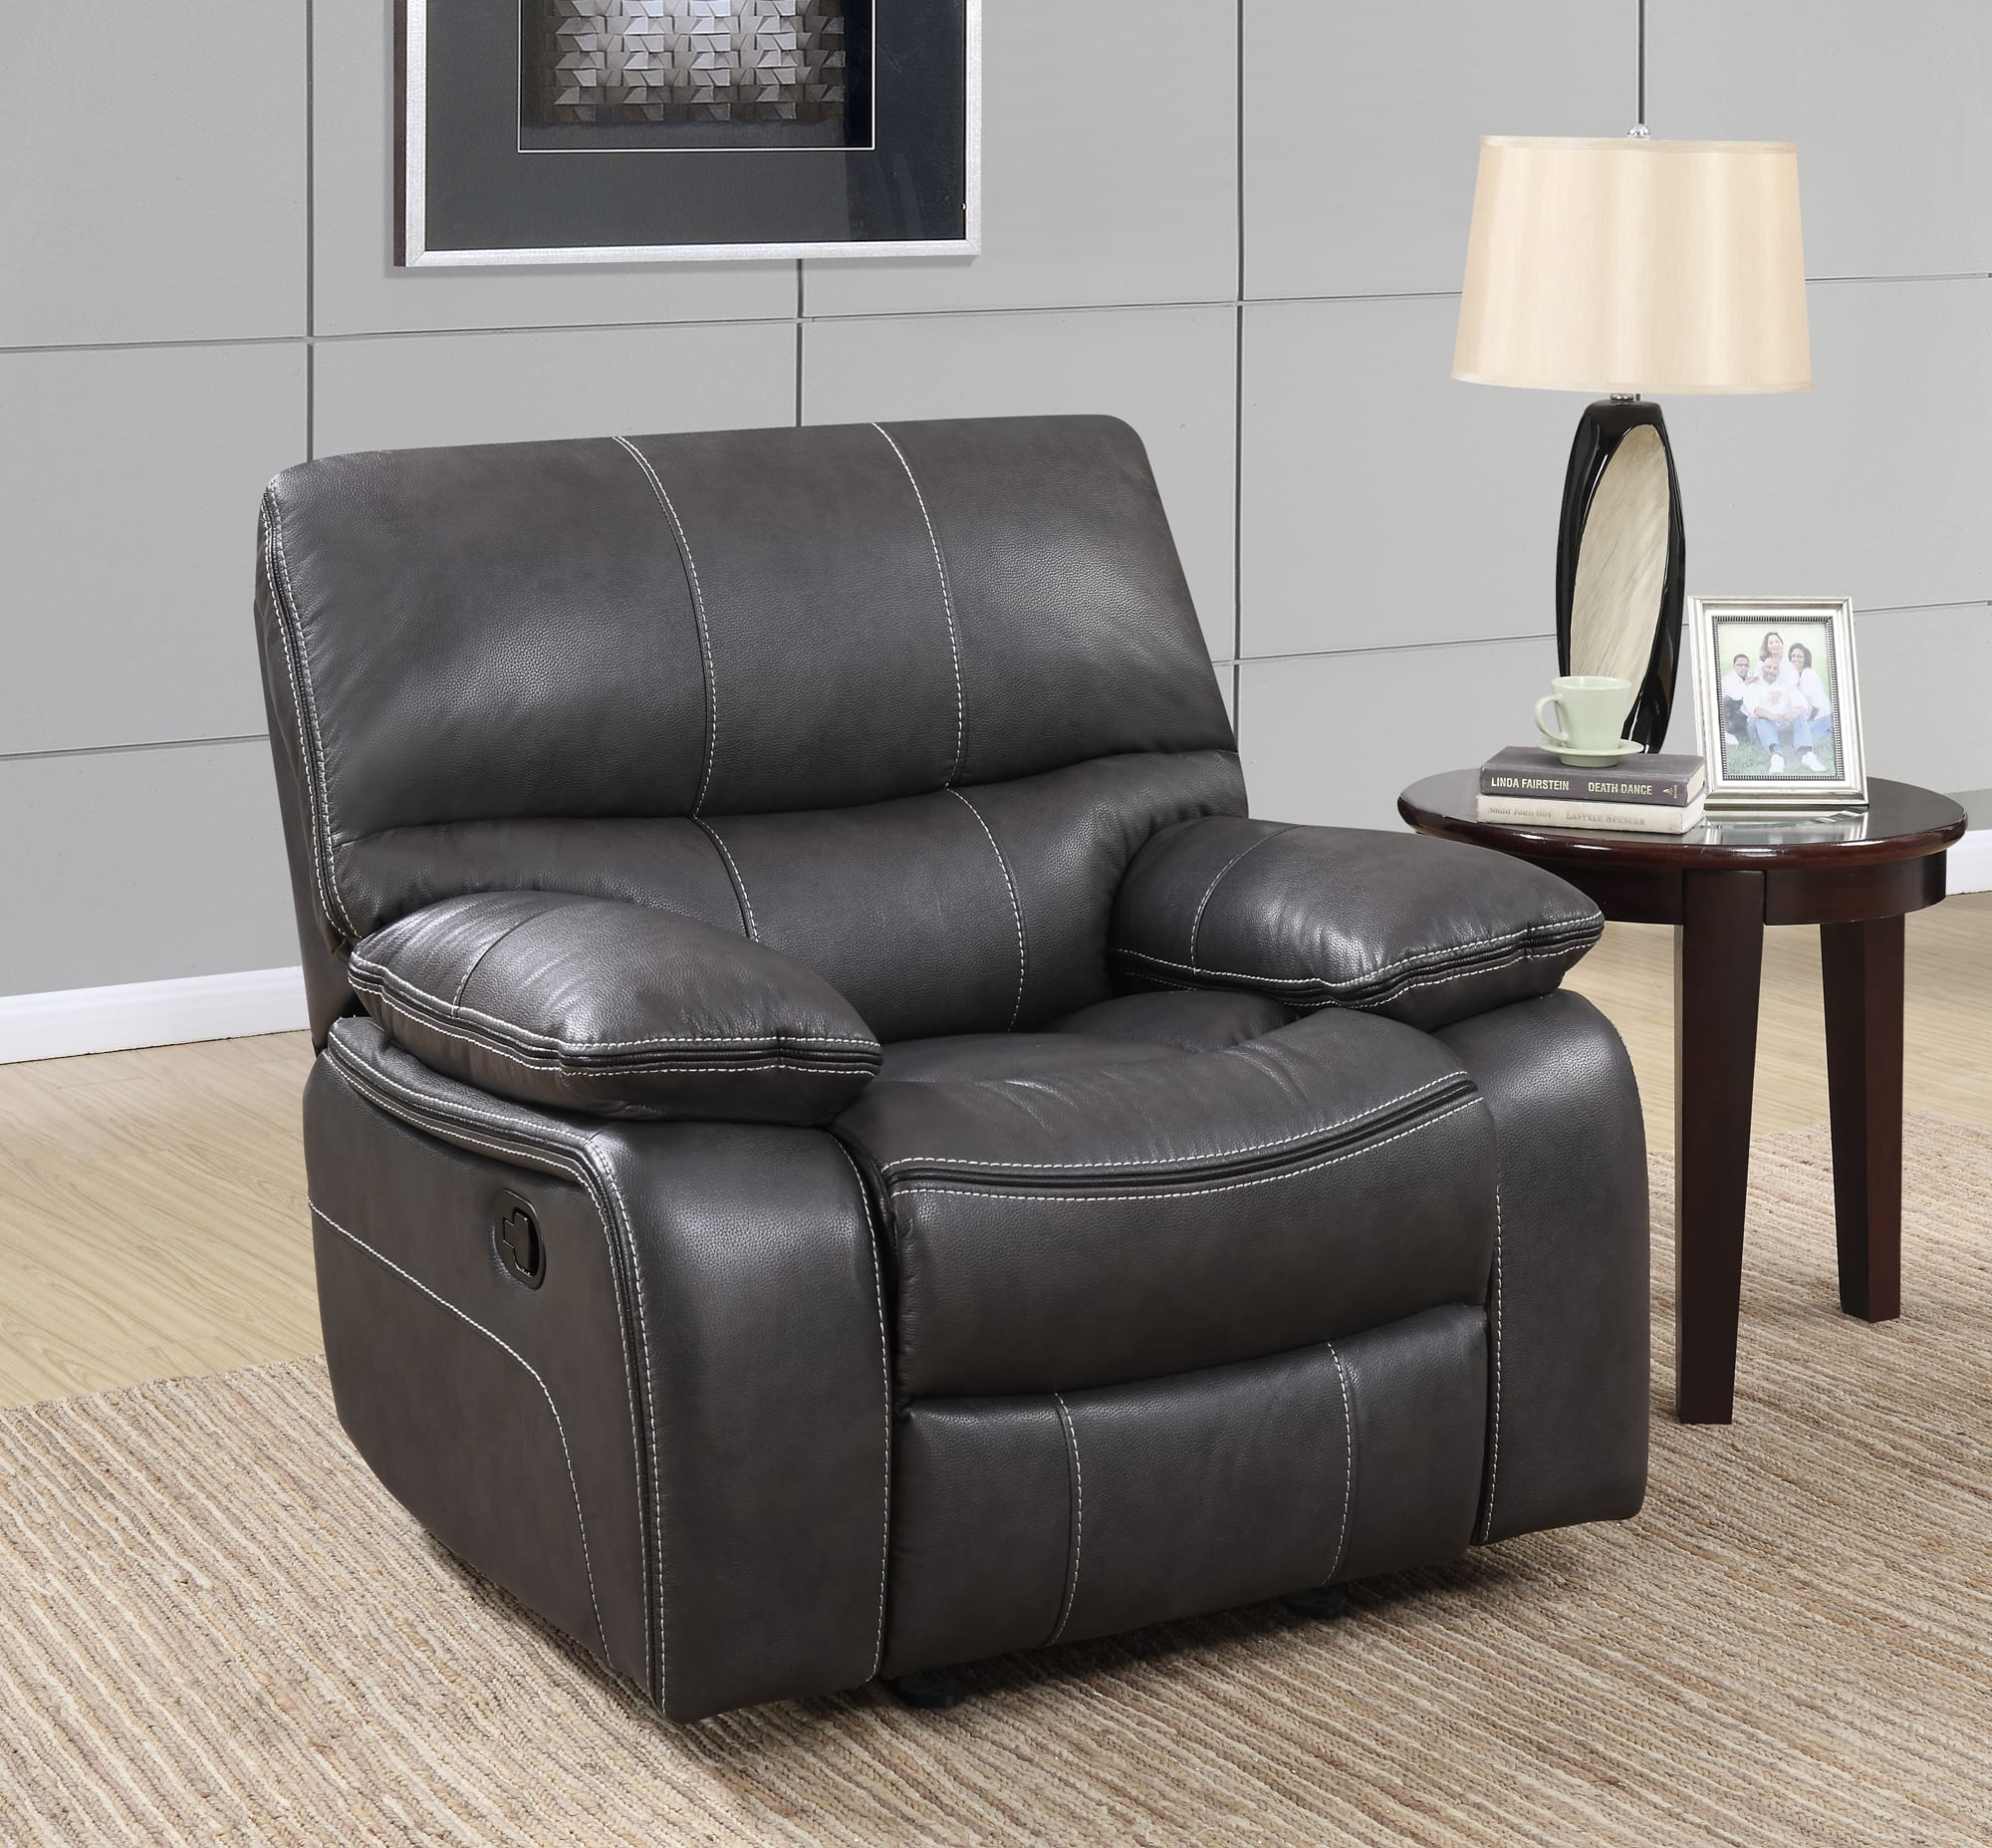 U0040 Grey Black Leather Glider Reclining Chair by Global Furniture